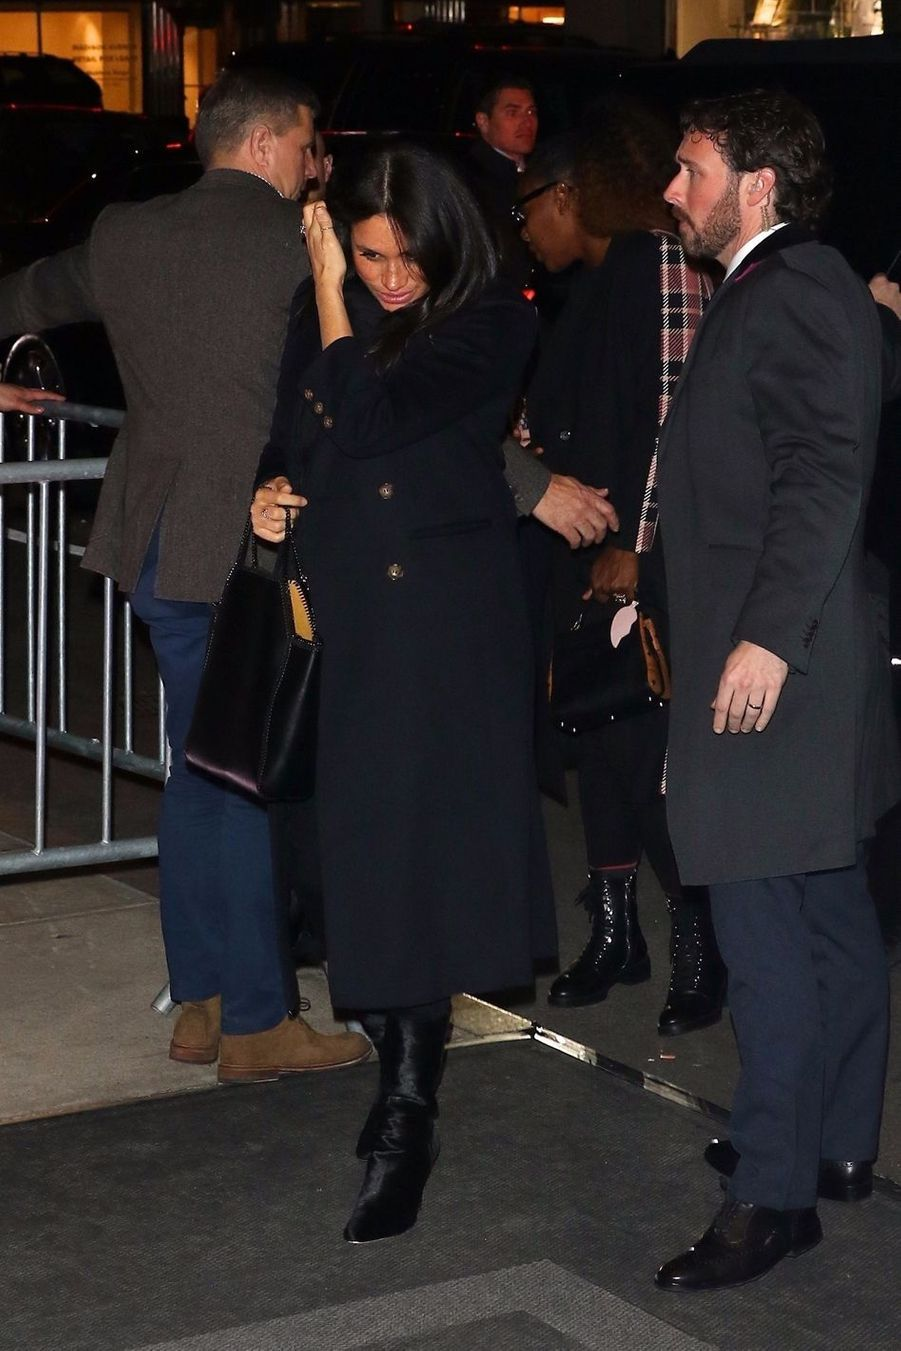 Meghan Markle à la sortie du restaurant The Polo Bar à New York City, le 19 février 2019.